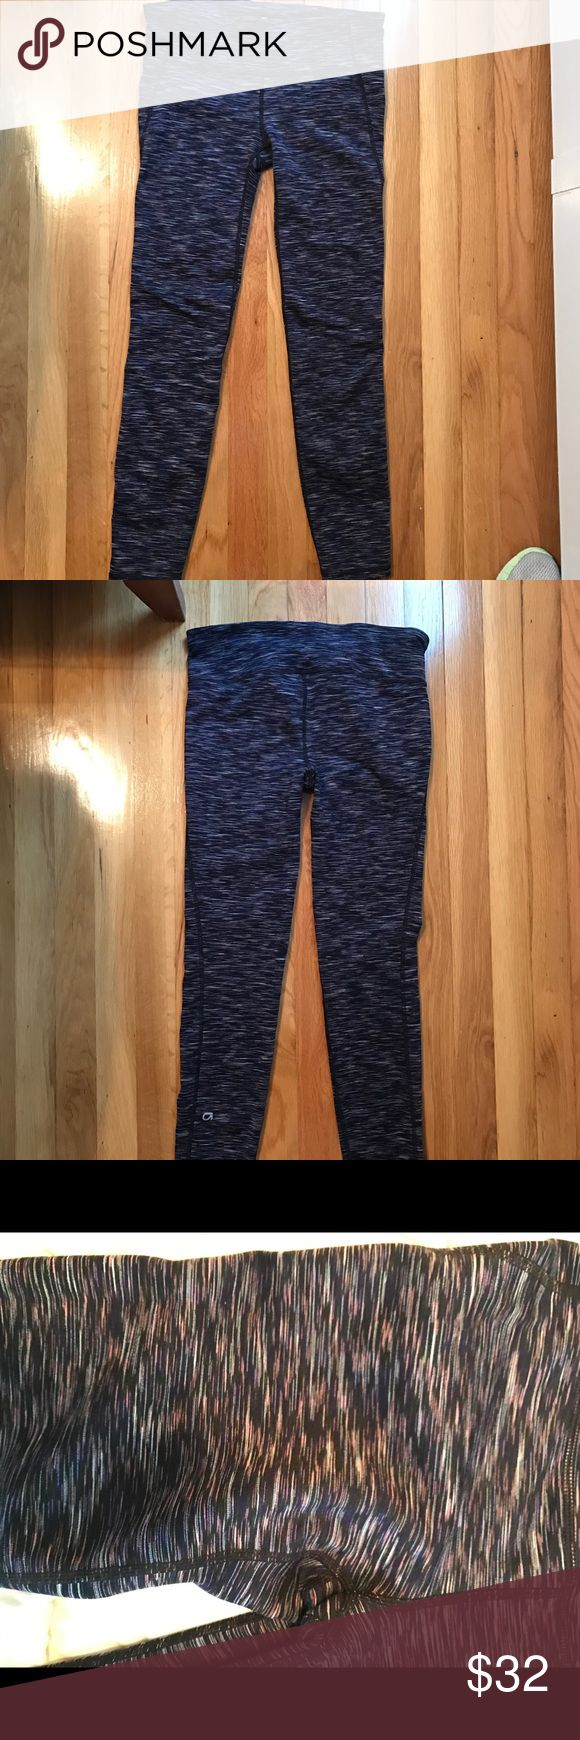 """Gap fit gfast thick legging """"Navy multi"""" color navy/purple/lilac pretty color tone mix. Worn 1-2 times no stains or pilling. Gap brand, size small. GAP Pants Leggings"""